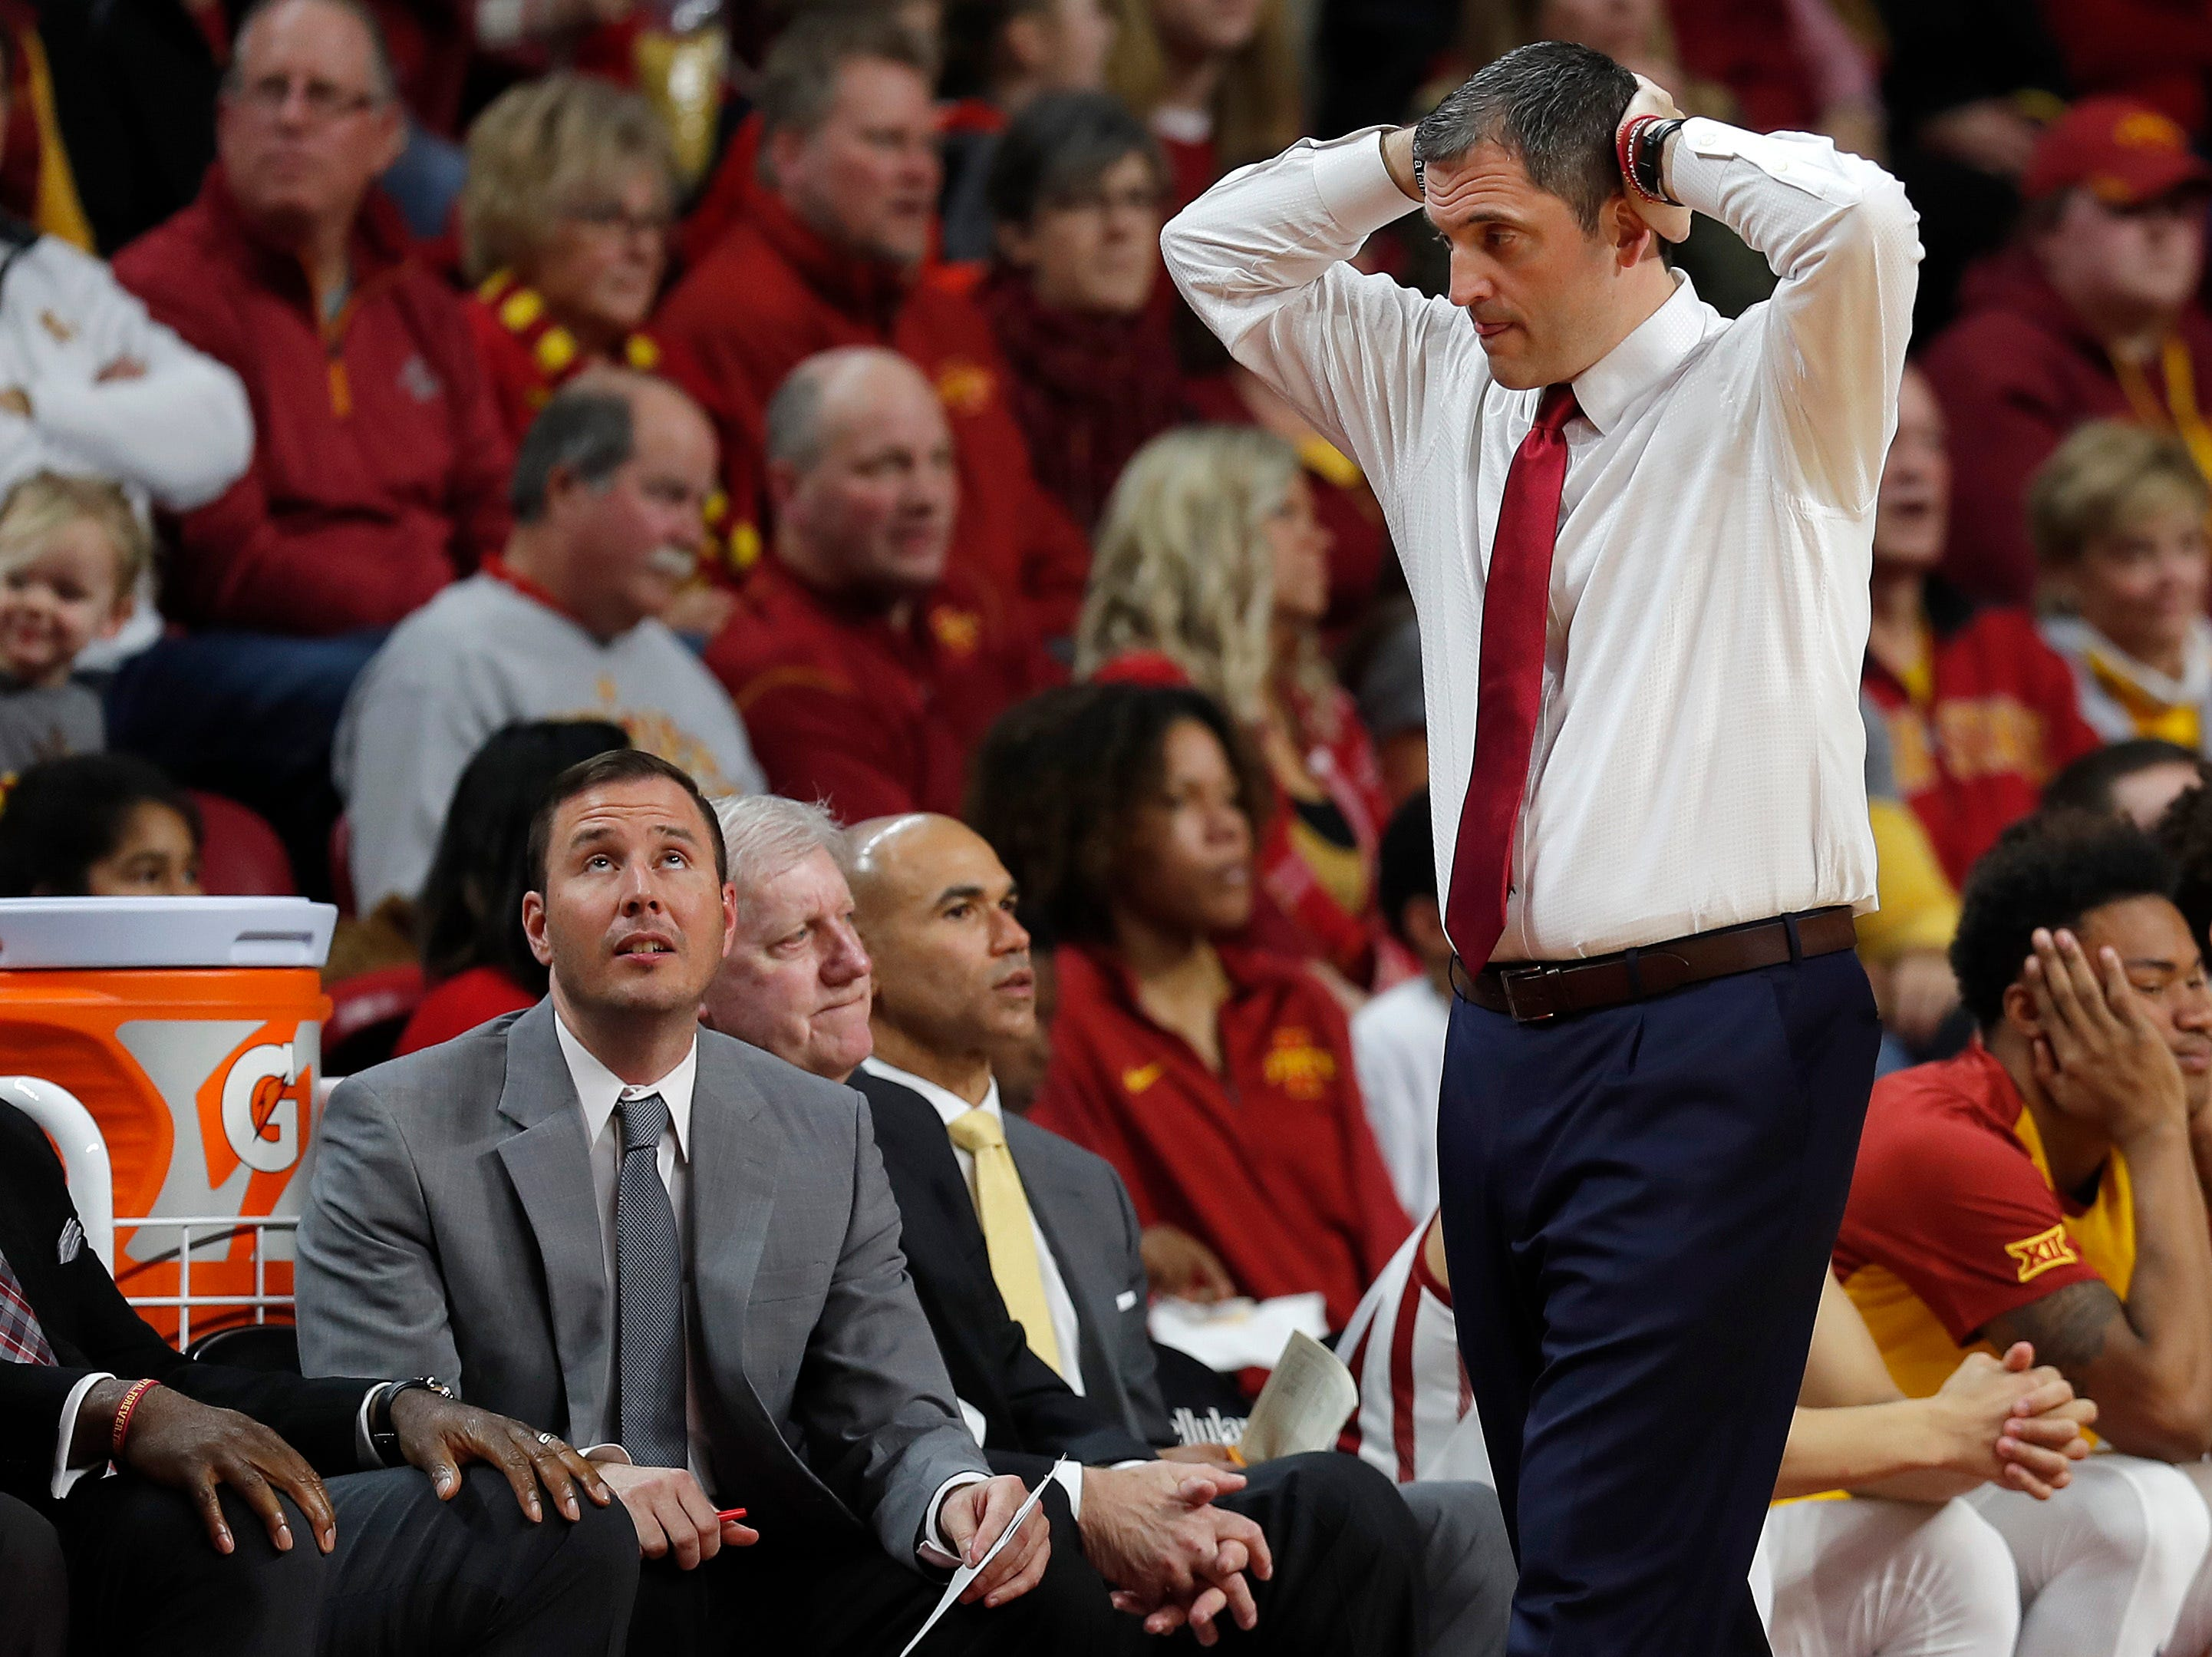 Iowa State oach Steve Prohm, right, reacts after a foul on Iowa State during the first half of an NCAA college basketball game against Oklahoma State, Saturday, Jan. 19, 2019, in Ames.